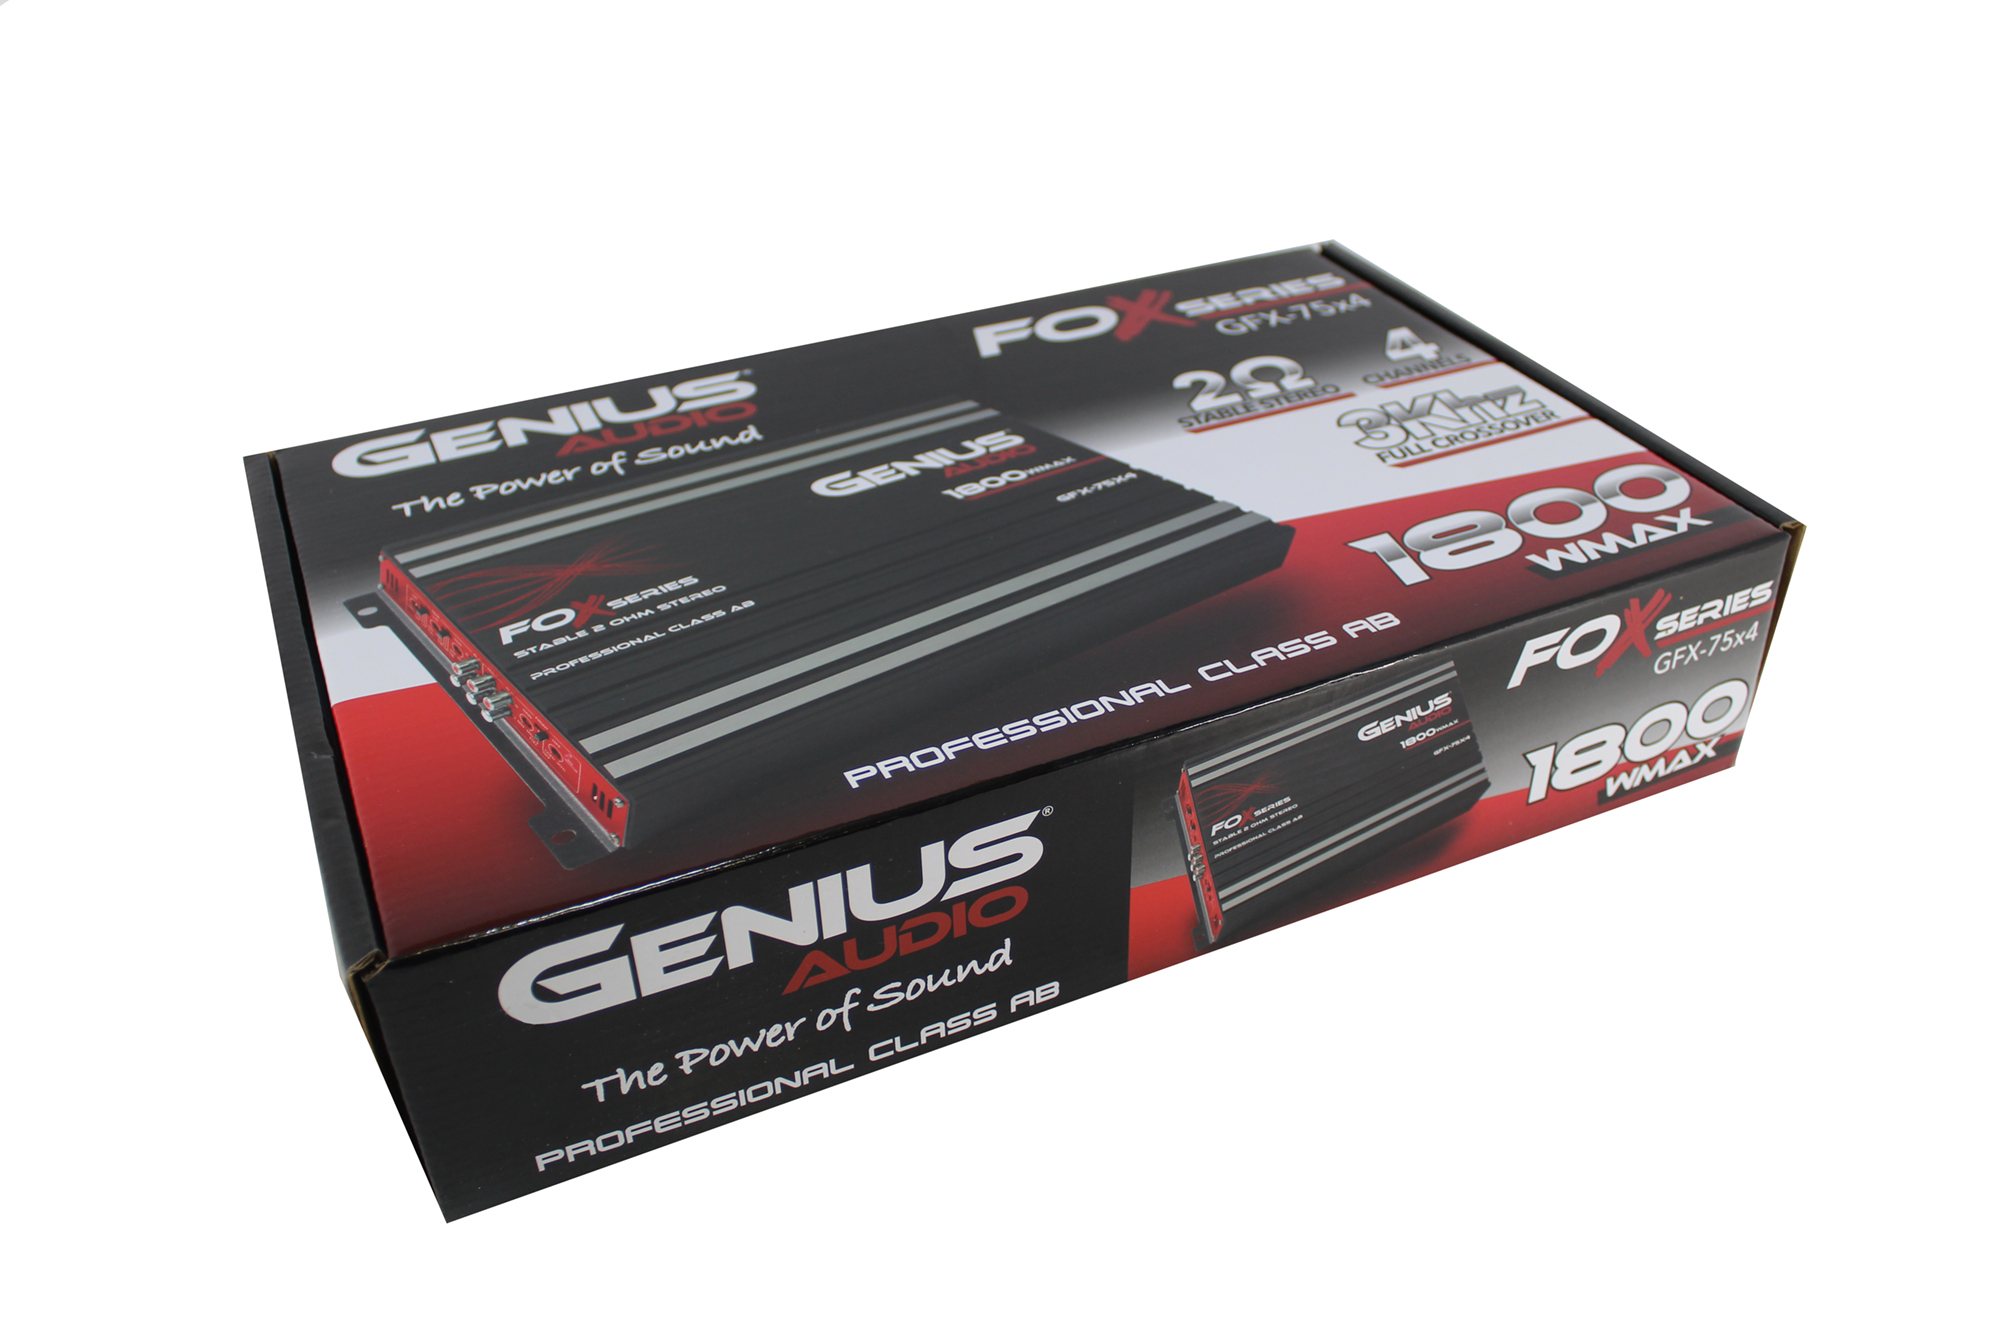 Genius GFX-75X4 1800 Watts-Max Car Amplifier 4-Channels Professional Class-AB 2-Ohm Stable Stereo